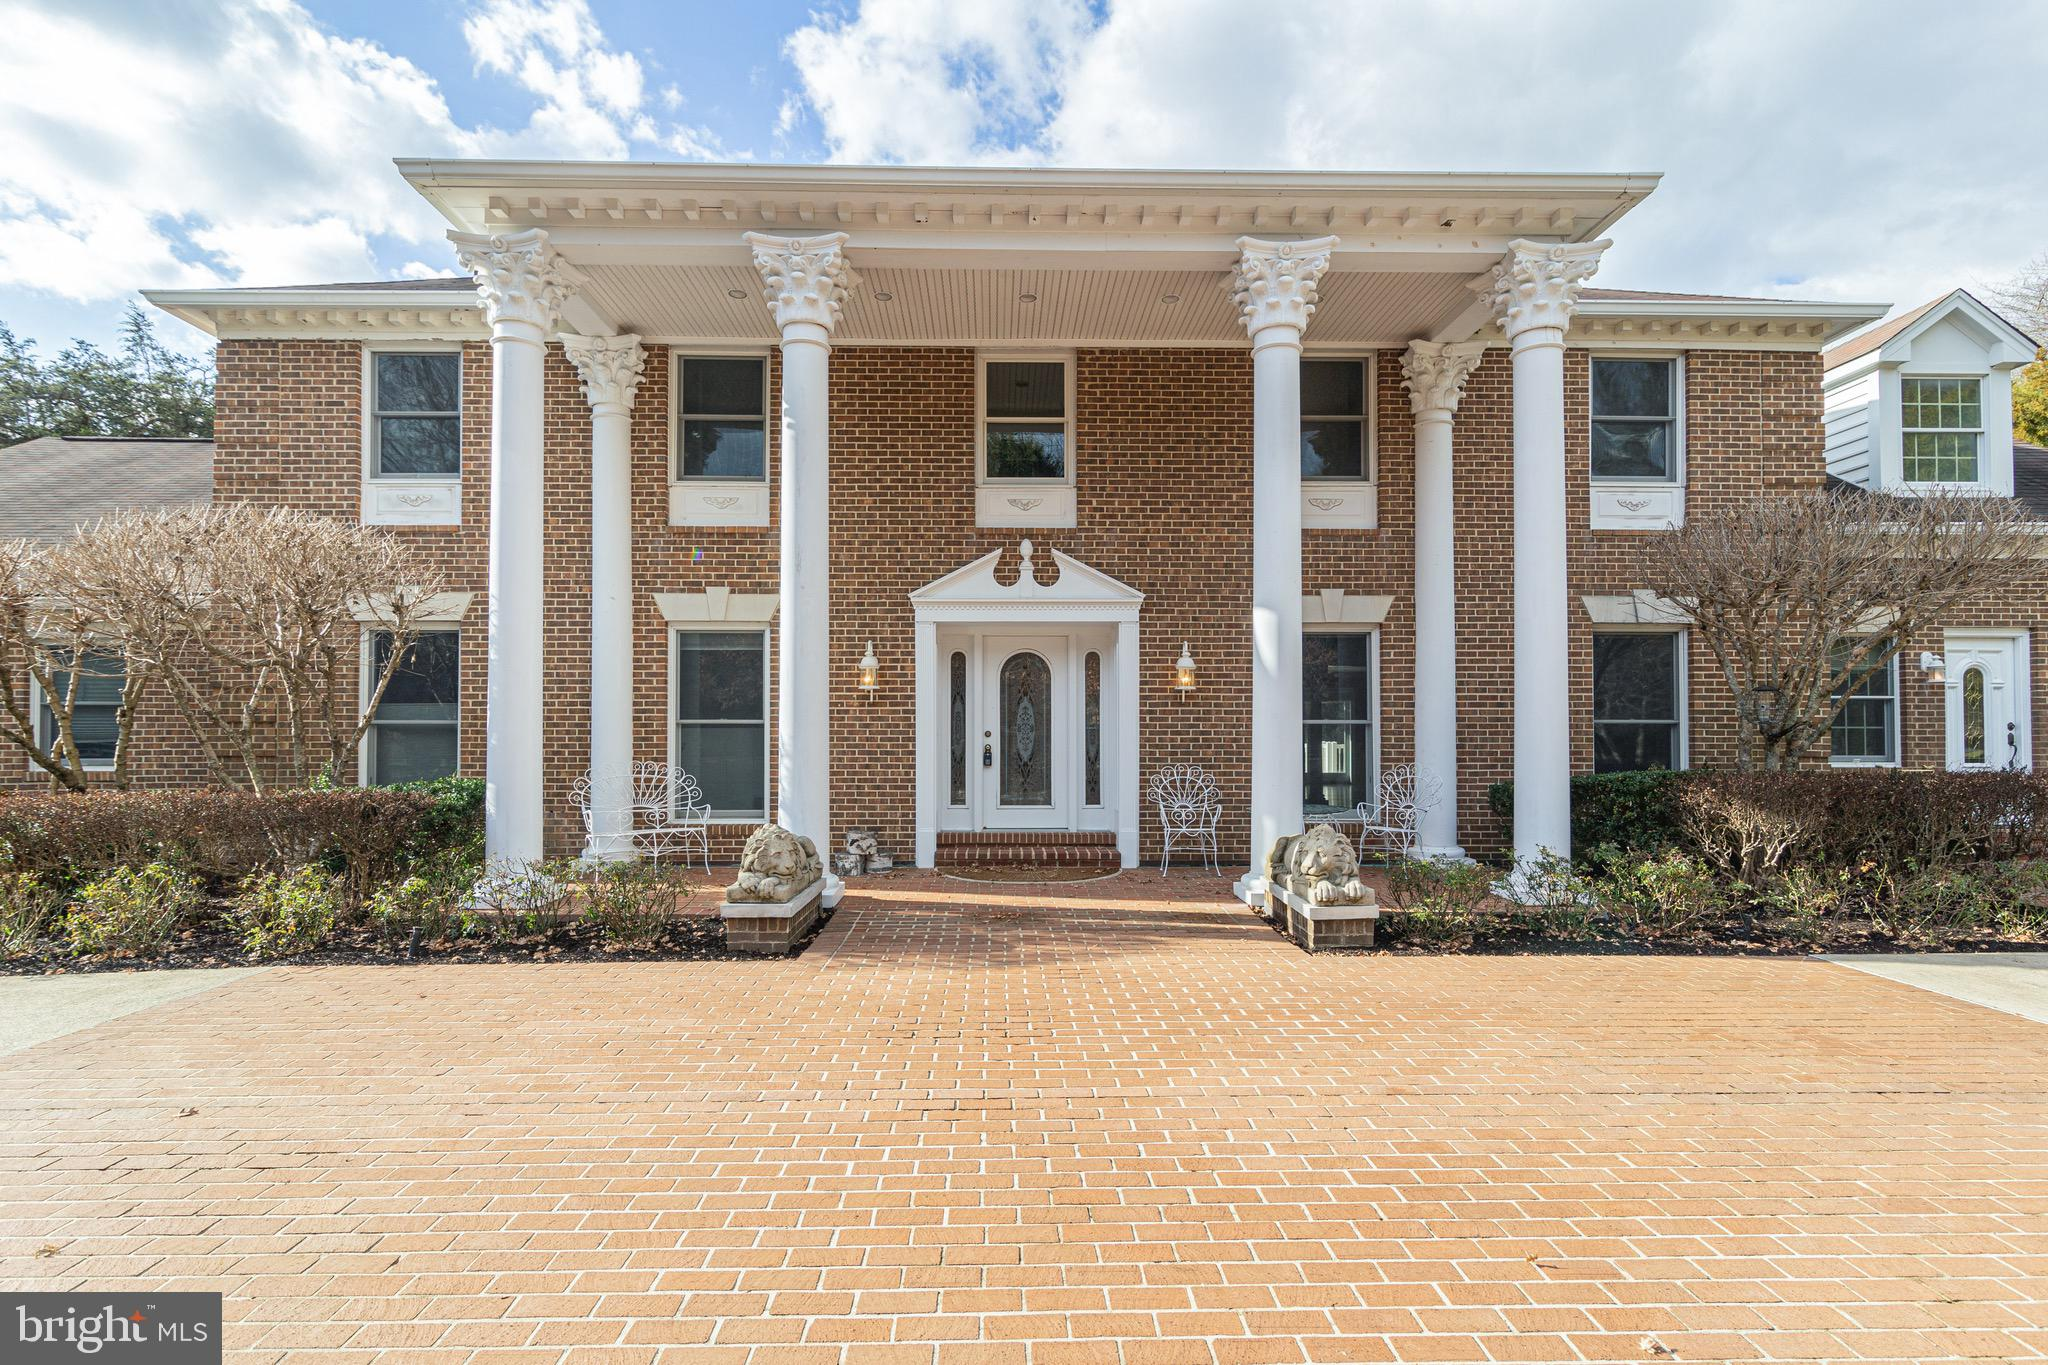 13830 ESWORTHY ROAD, GERMANTOWN, MD 20874